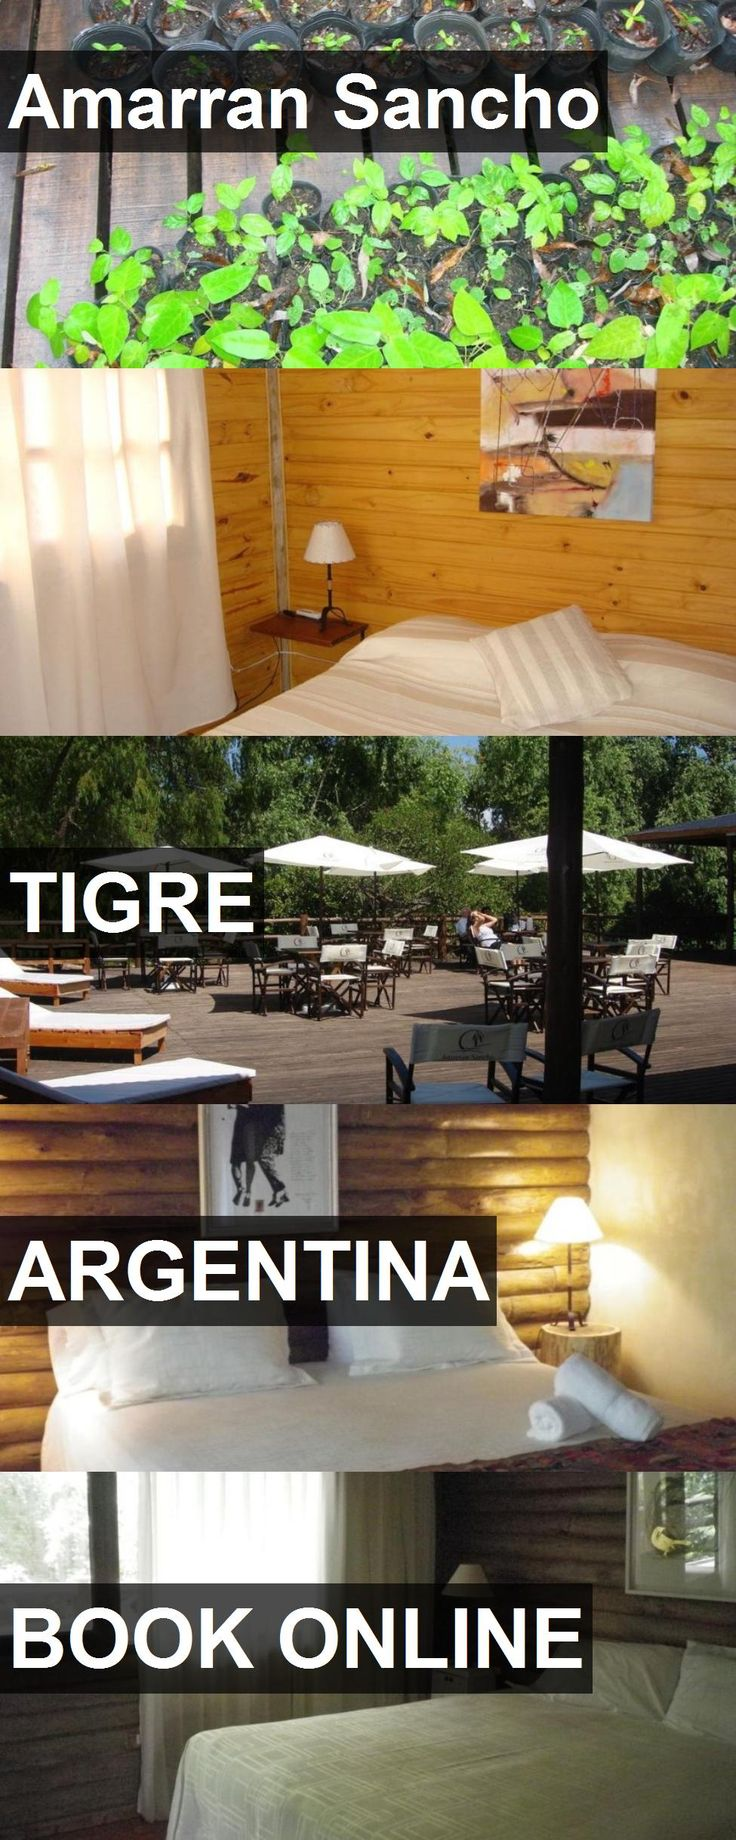 Hotel Amarran Sancho in Tigre, Argentina. For more information, photos, reviews and best prices please follow the link. #Argentina #Tigre #travel #vacation #hotel